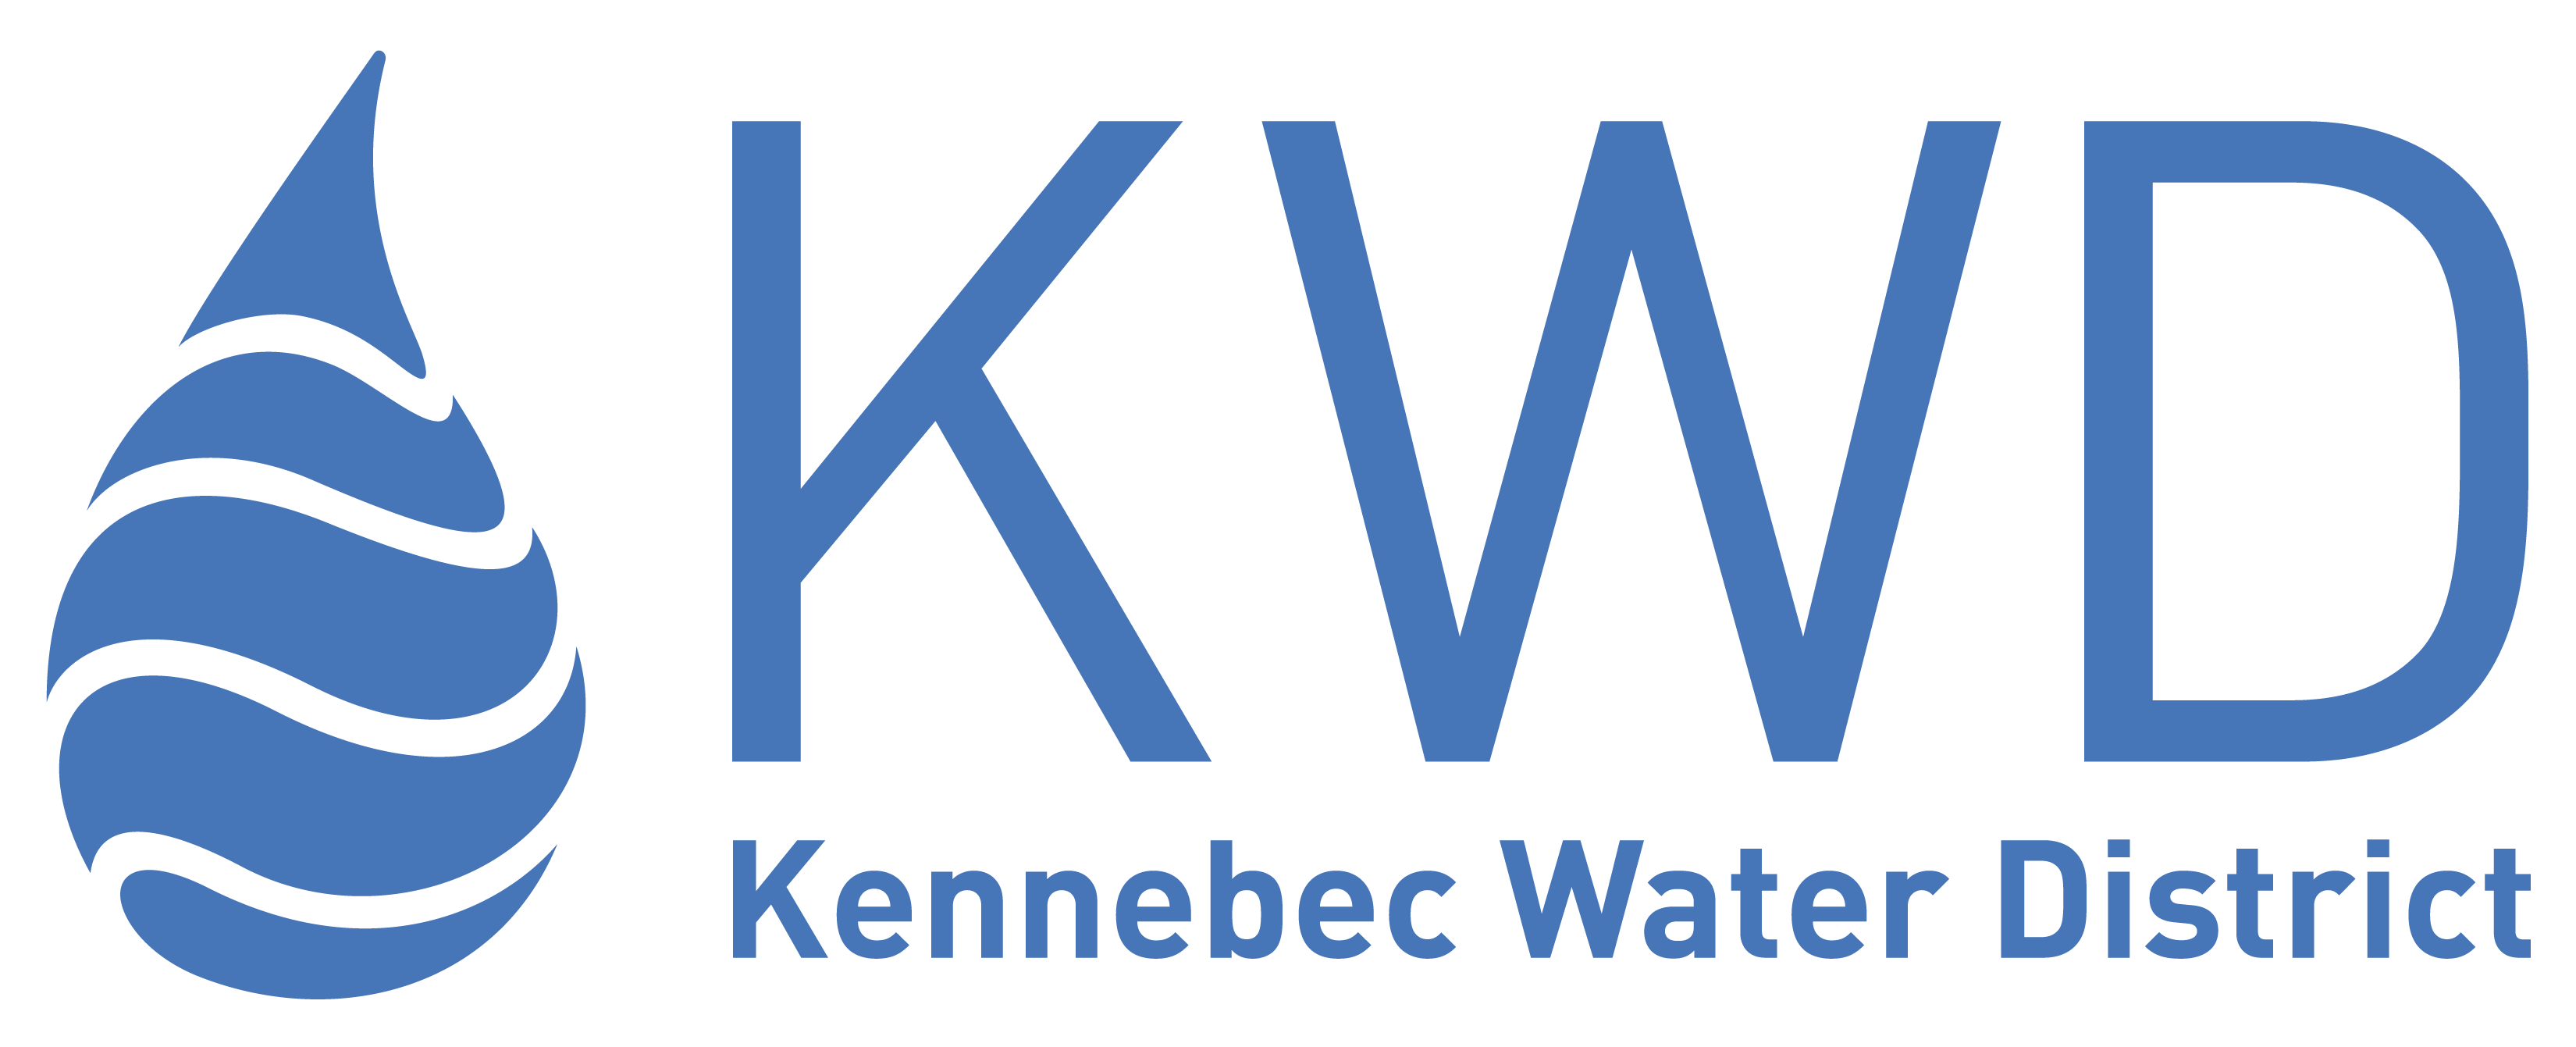 Kennebec Water District